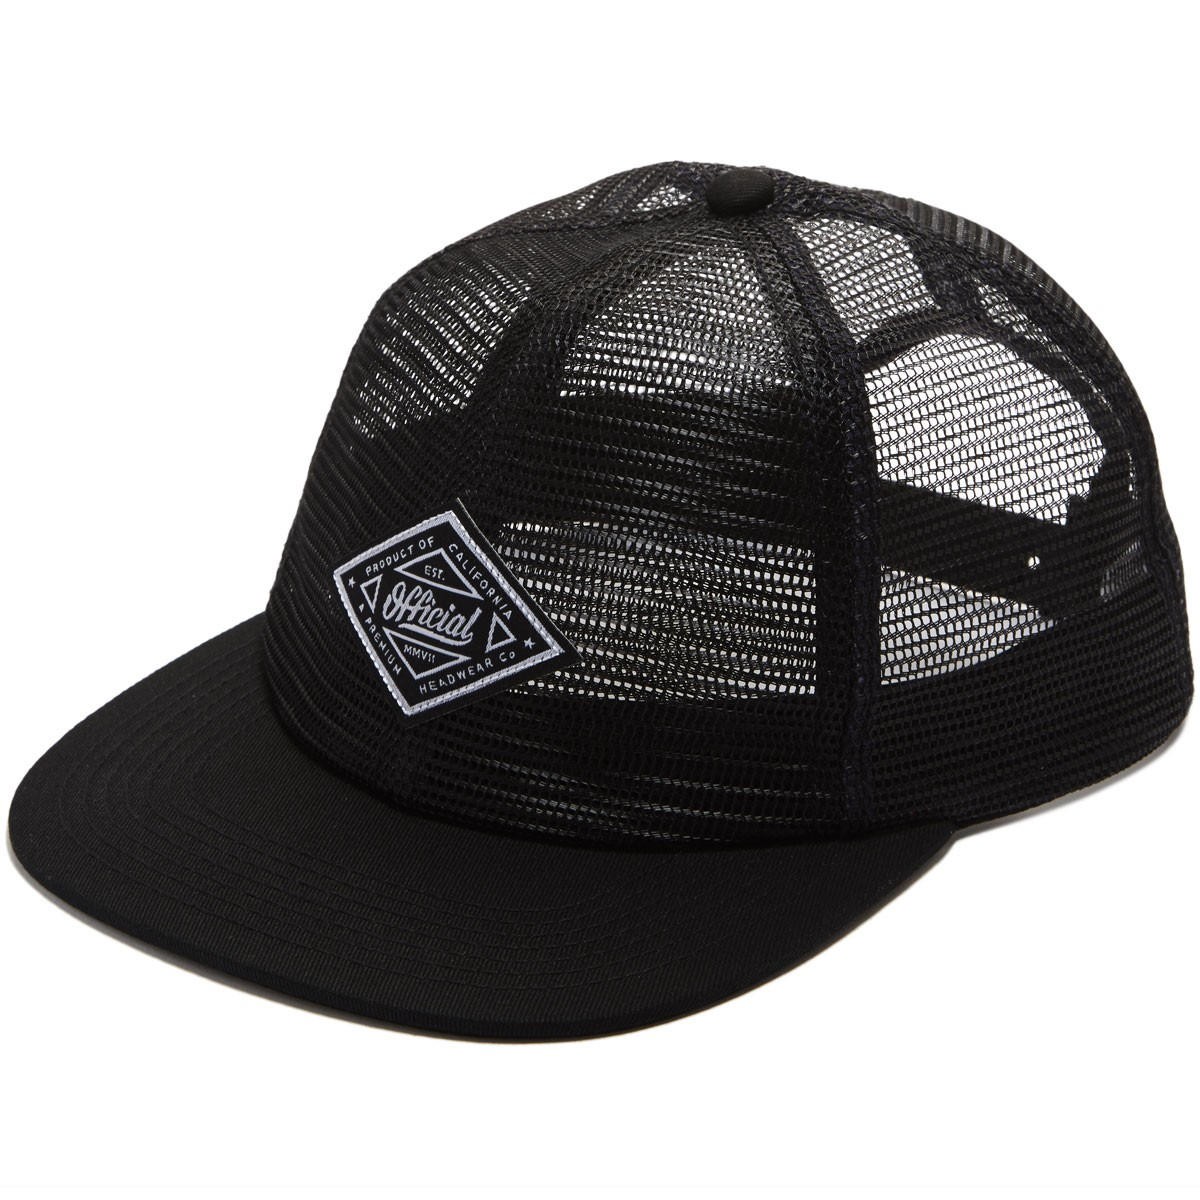 Official Skate Union Hat - Black